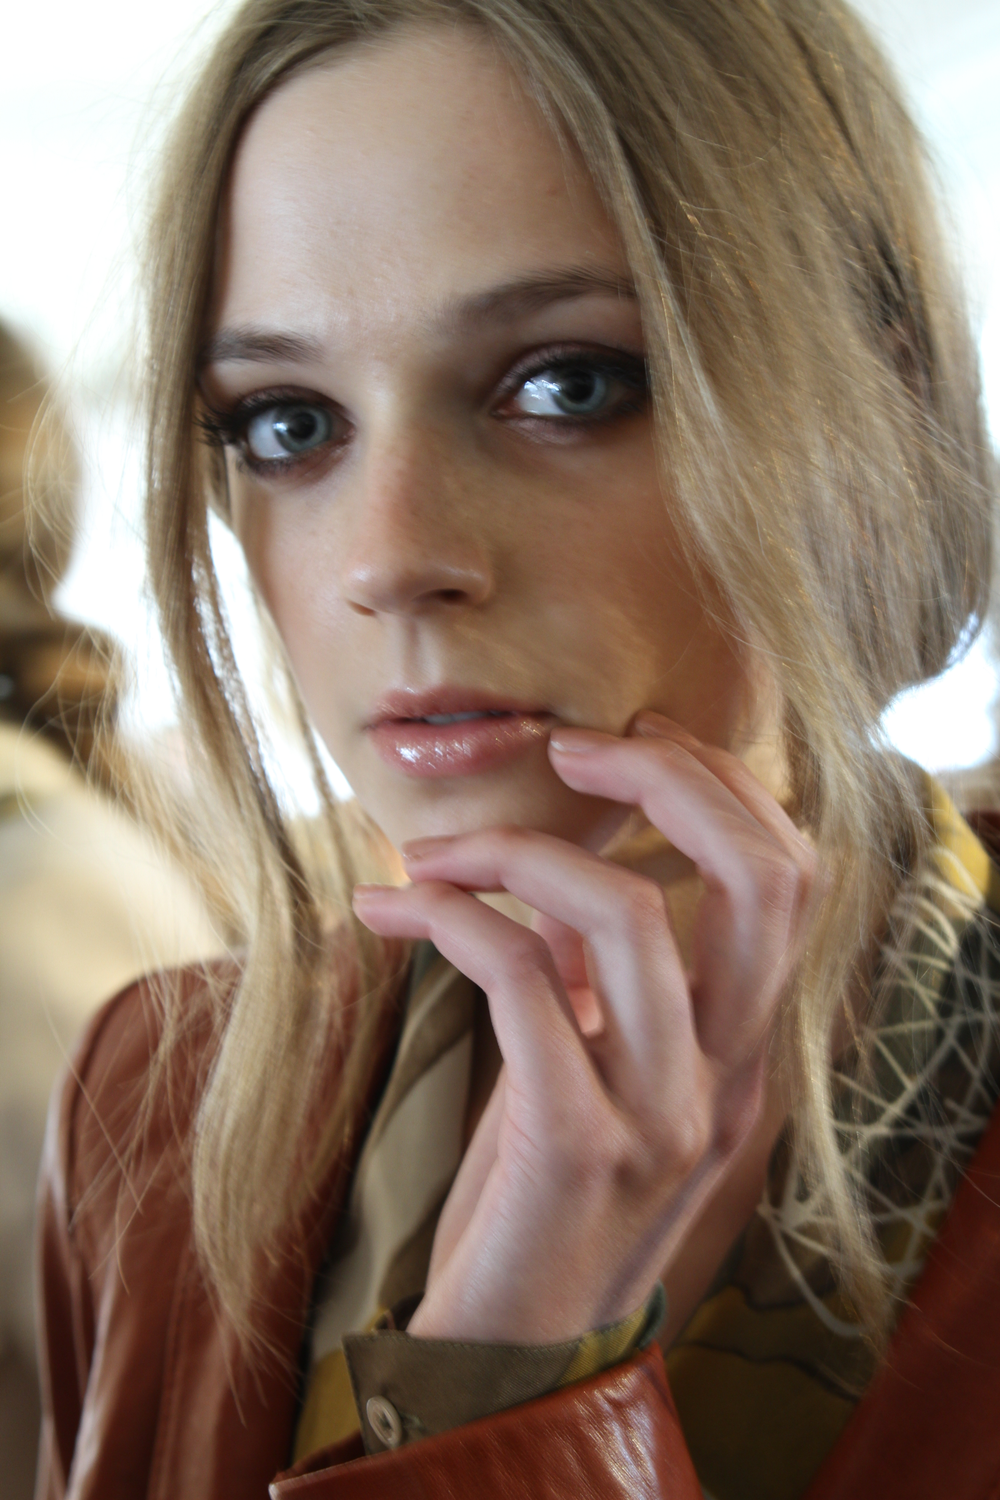 <p>For RZ by Rachel Zoe, Sunshine Outing for <strong>Zoya</strong> polished models&rsquo; nails in Amanda.</p>